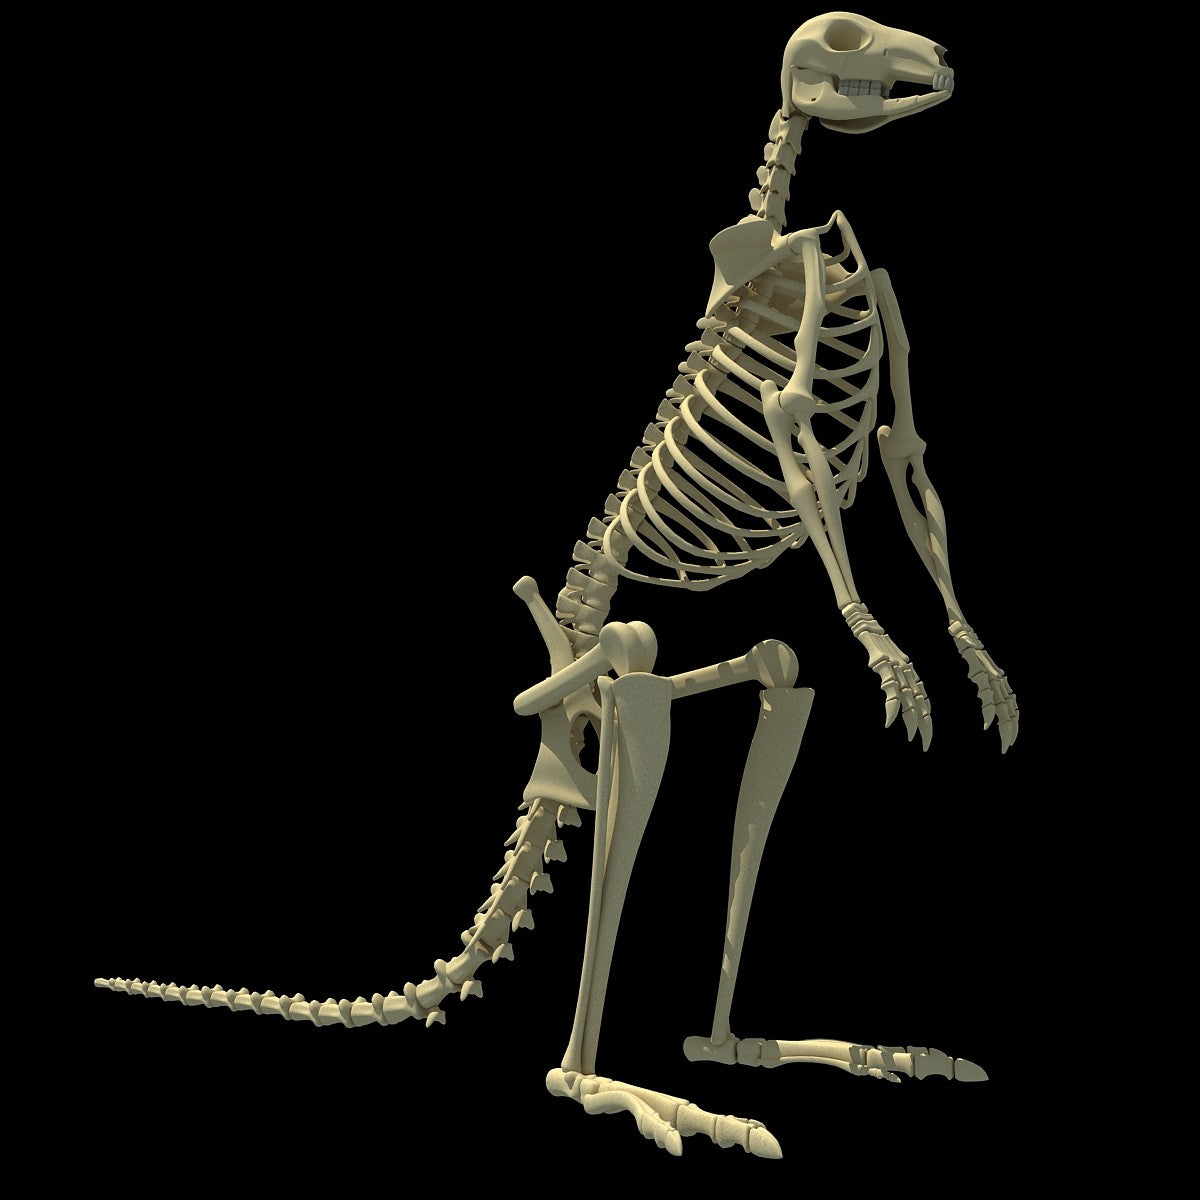 Kangaroo Skeleton 3D Model